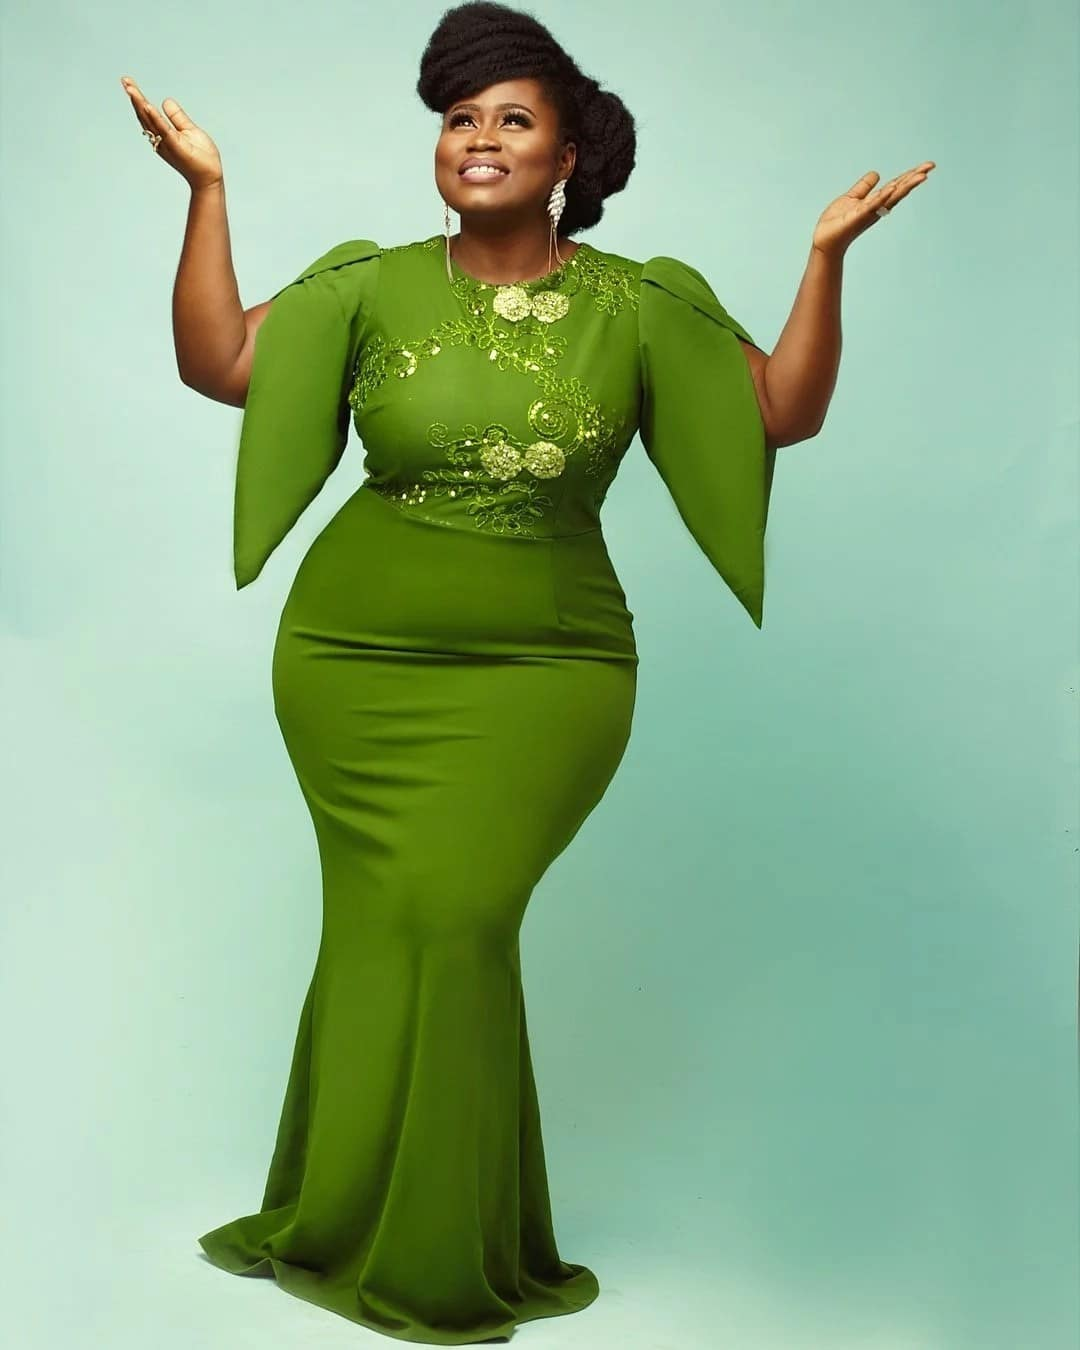 It's a new birth green for Lydia Forson as she turns 333